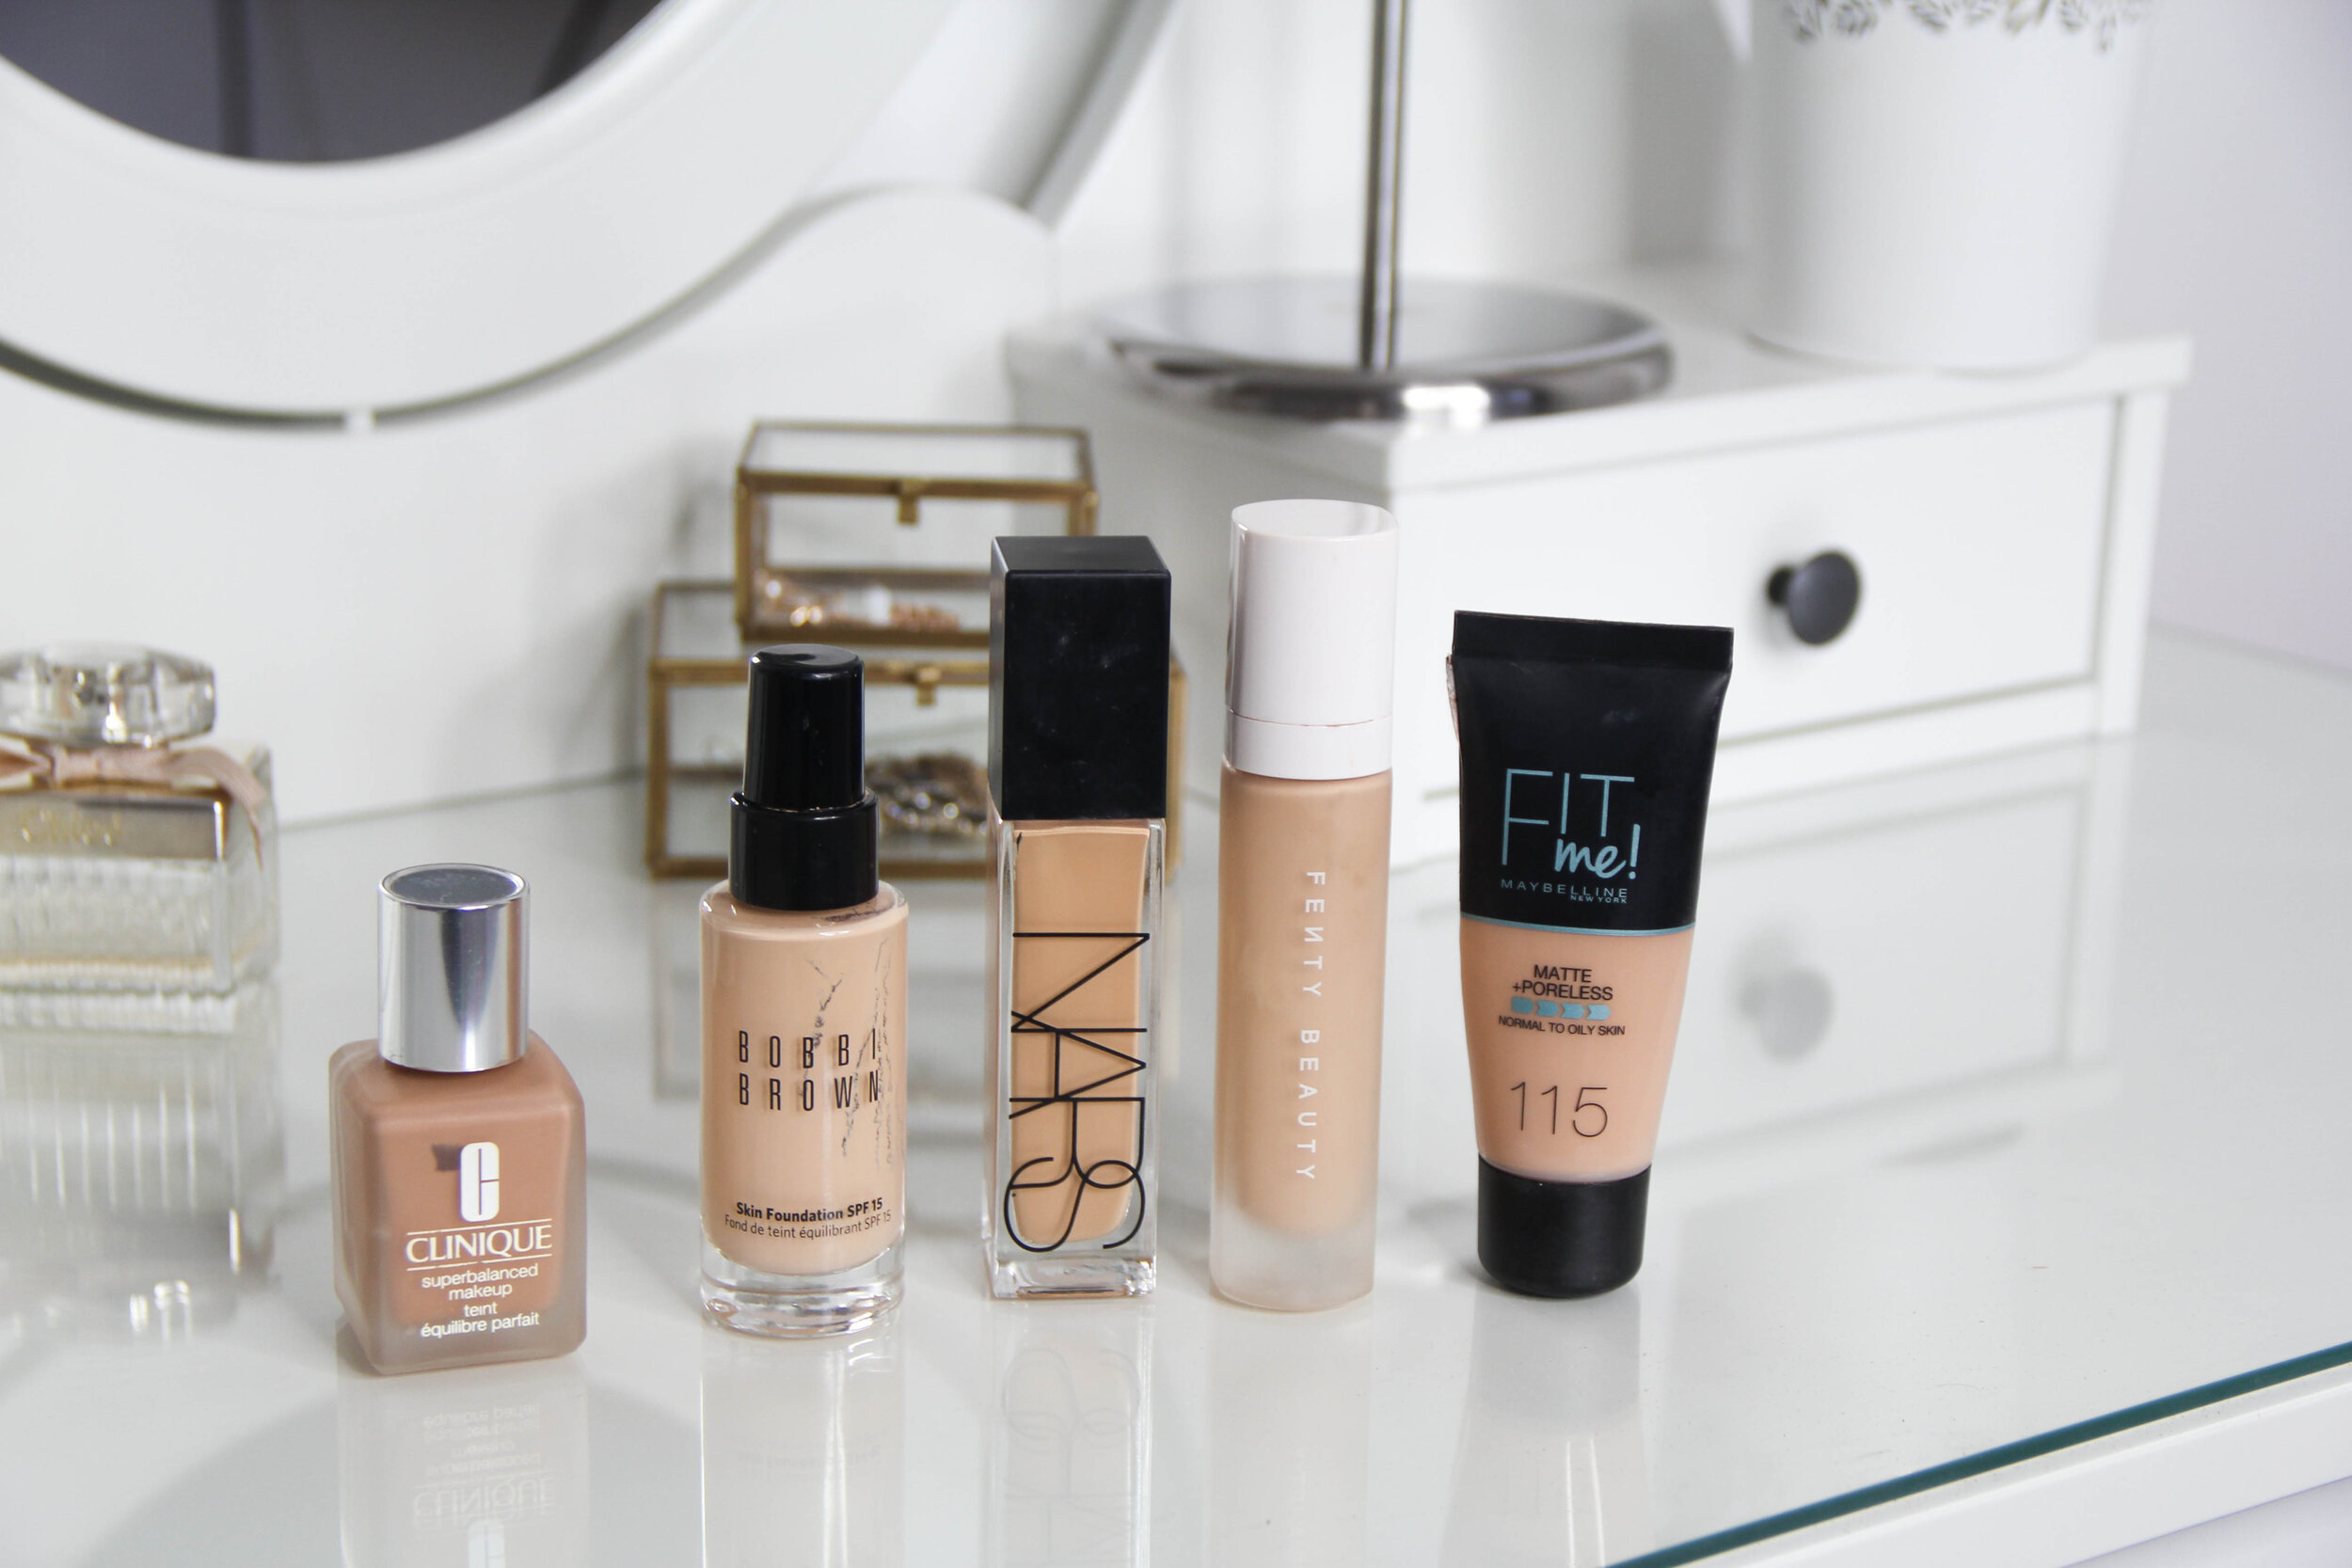 These were my favorite foundations… - I hope you guys enjoyed reading this review, and now you have enough reasons to head to the nearest makeup store and buy yourself one or two, or all five of these holy grail foundations to always rely on.